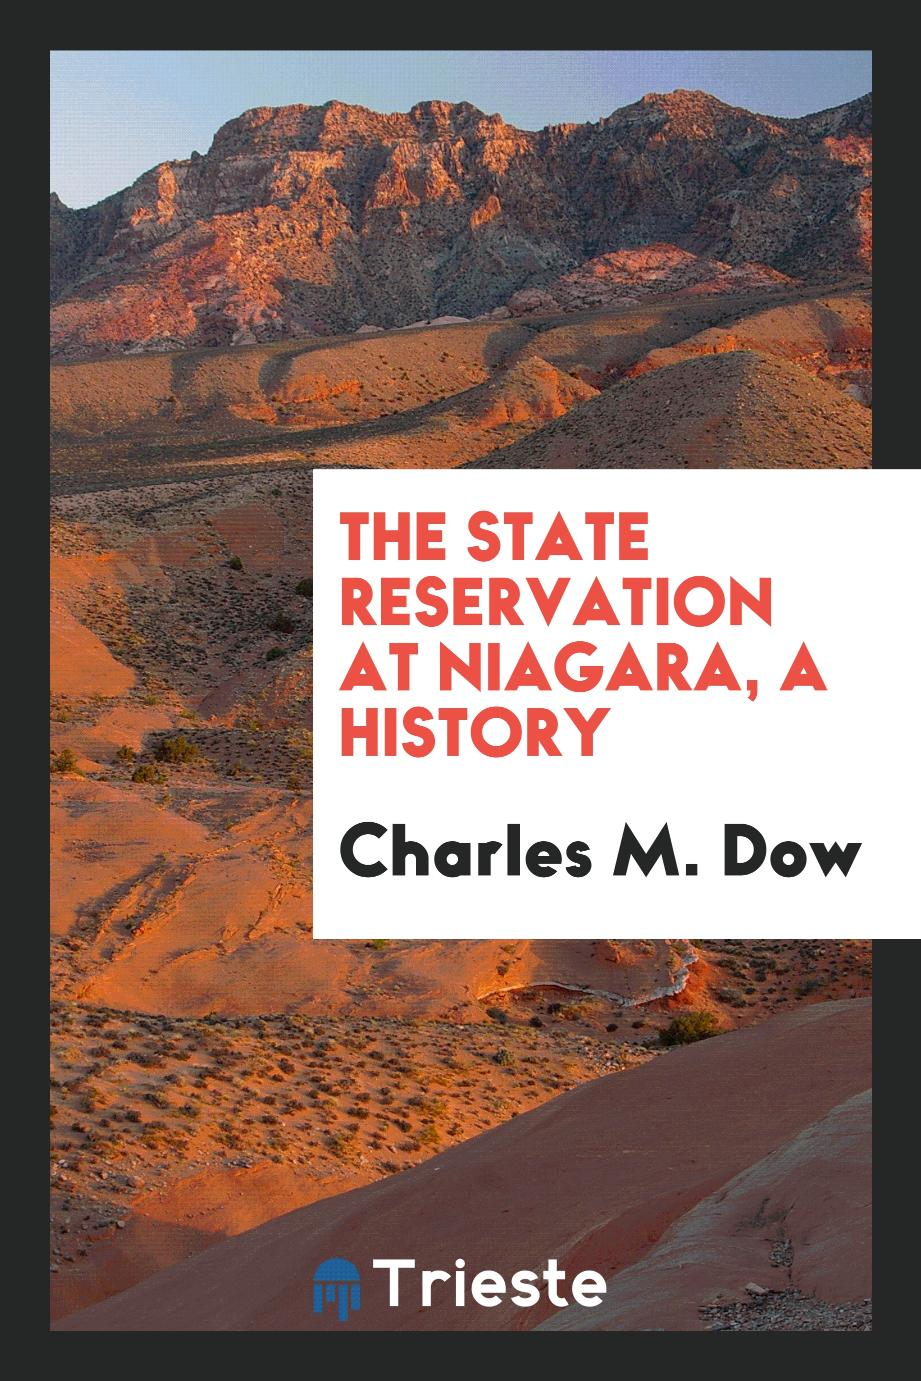 The State Reservation at Niagara, a History